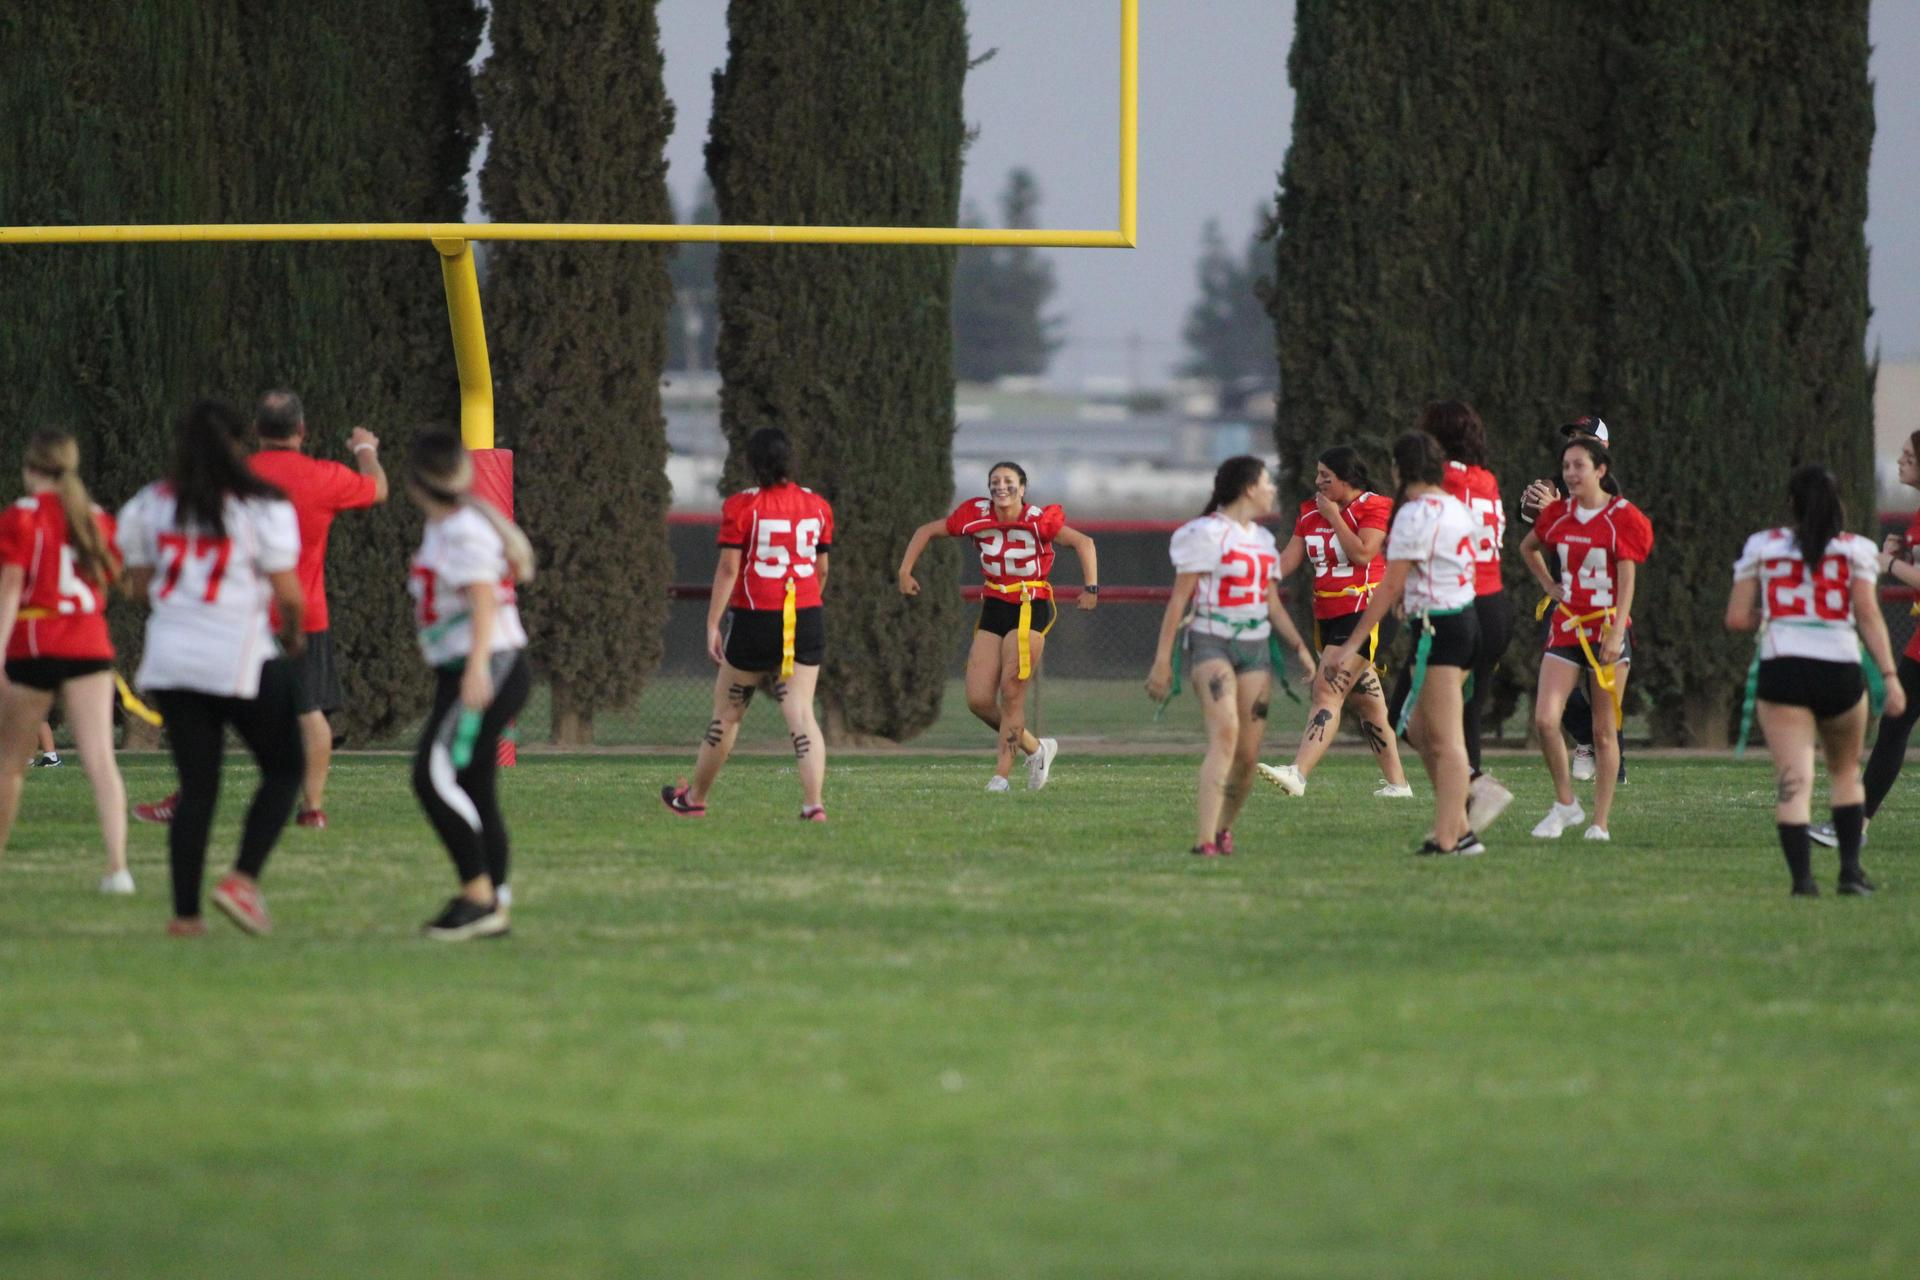 Students playing football at powder puff